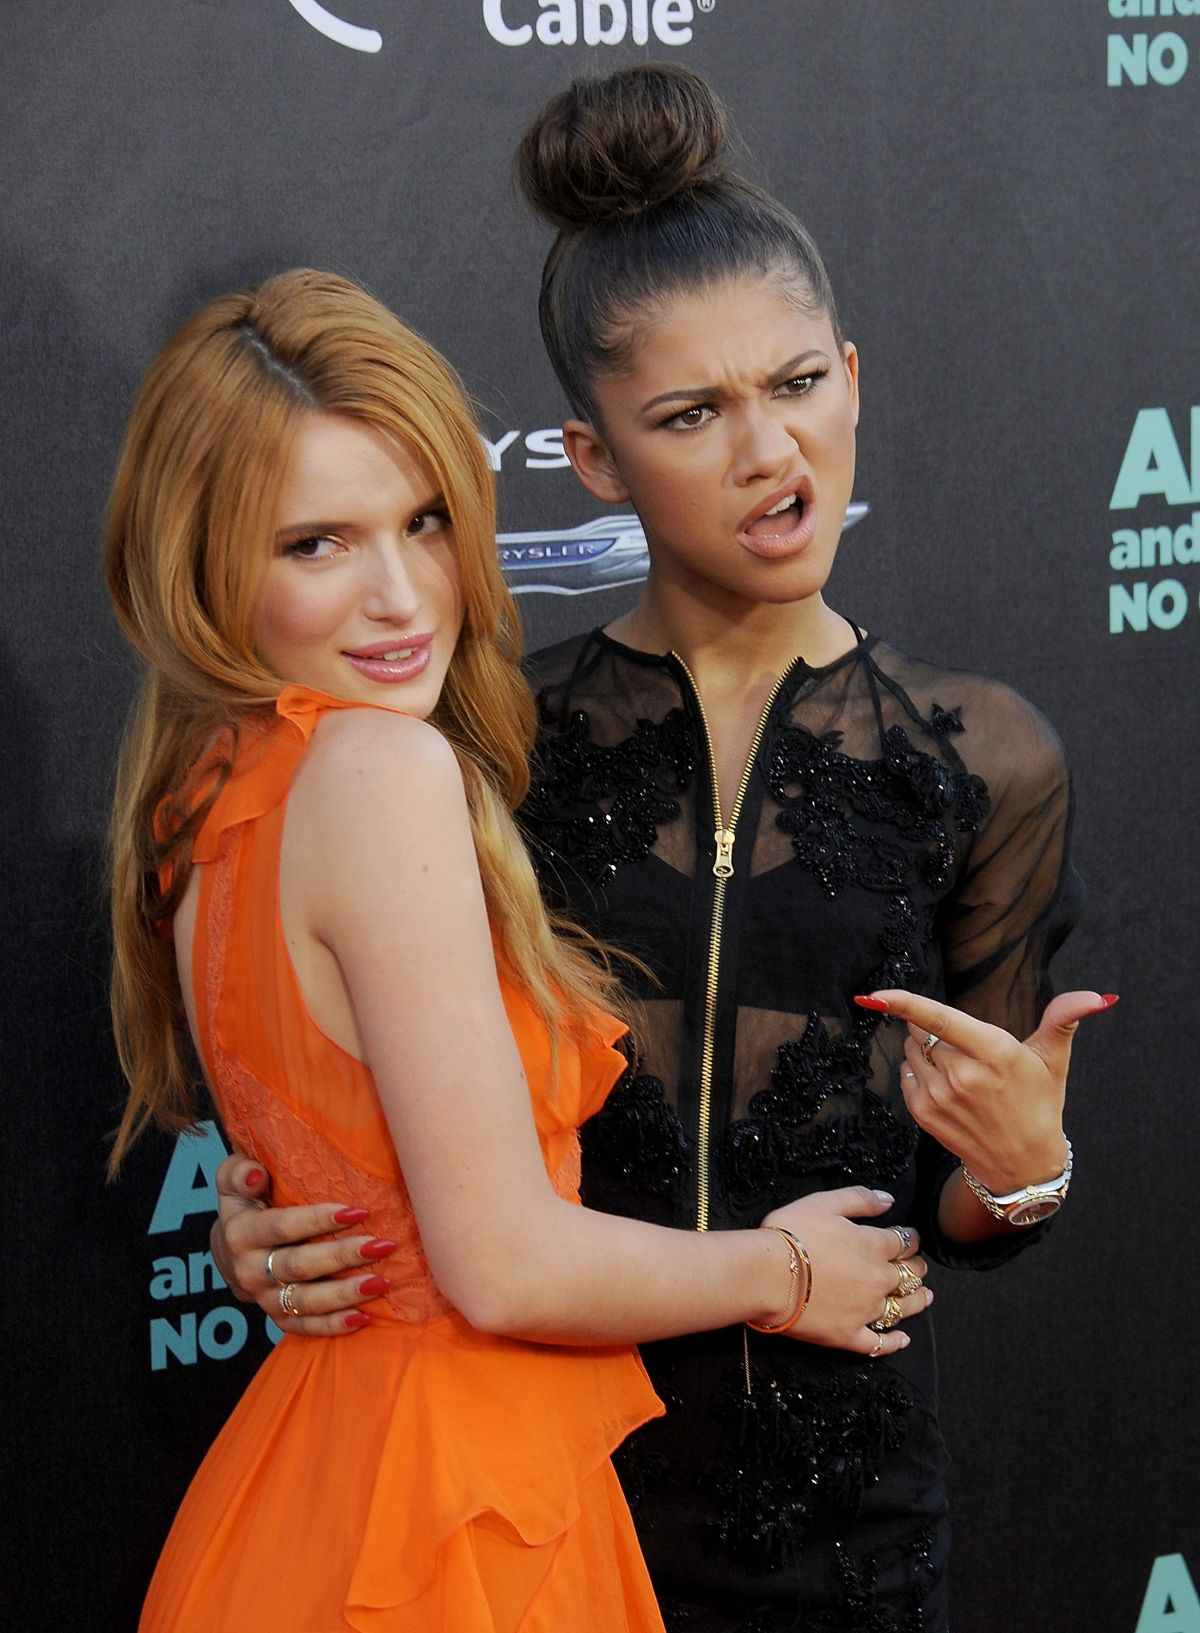 Bella Thorne To Guest Star On KC Undercover - Bella Thorne And Zendaya  Coleman Reunite